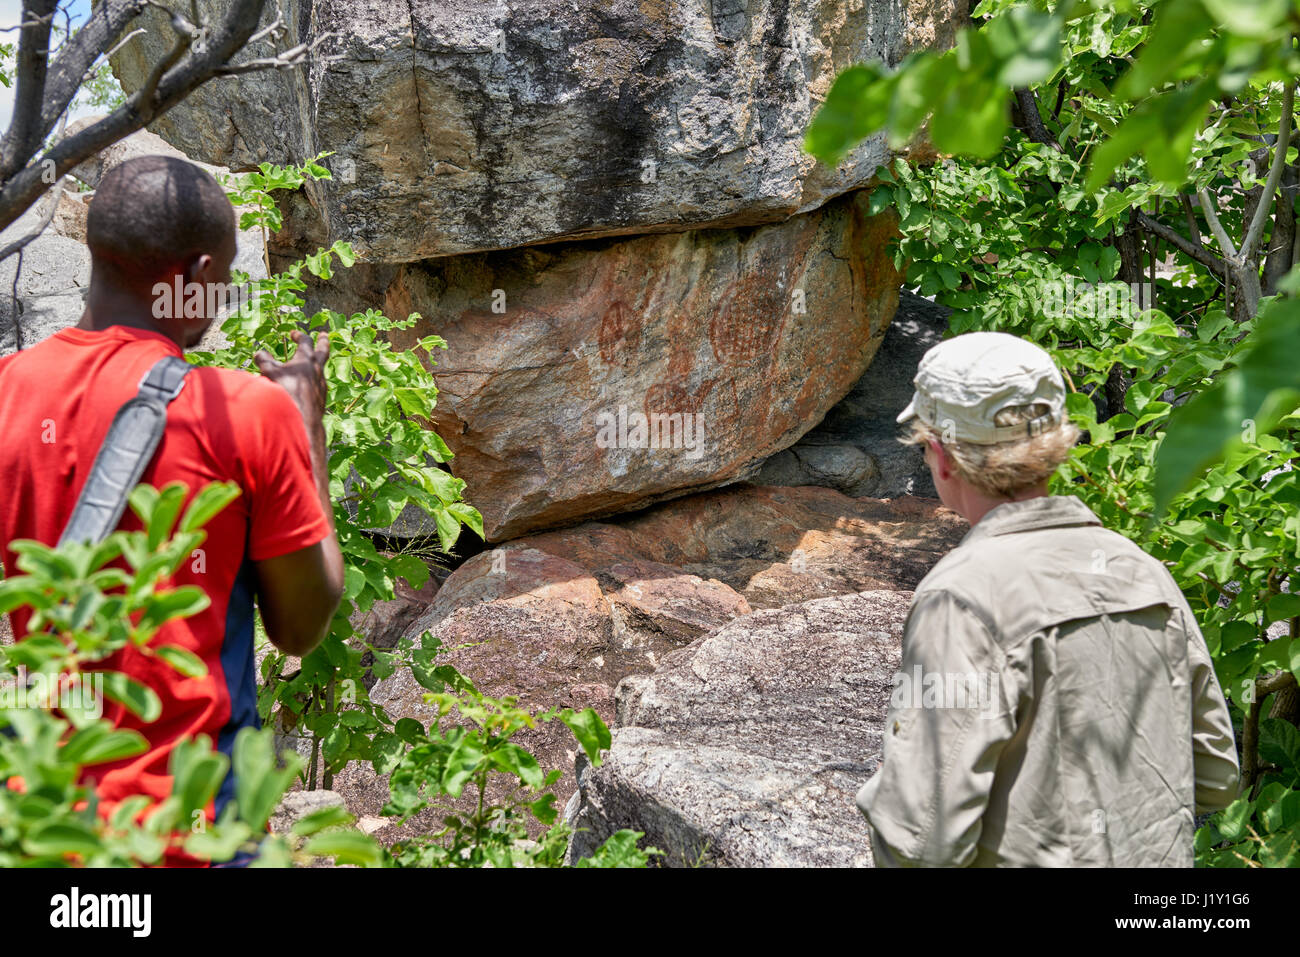 tourist and guide looking on Rock art, ancient San paintings, Tsodilo Hills, Botswana, Africa - Stock Image